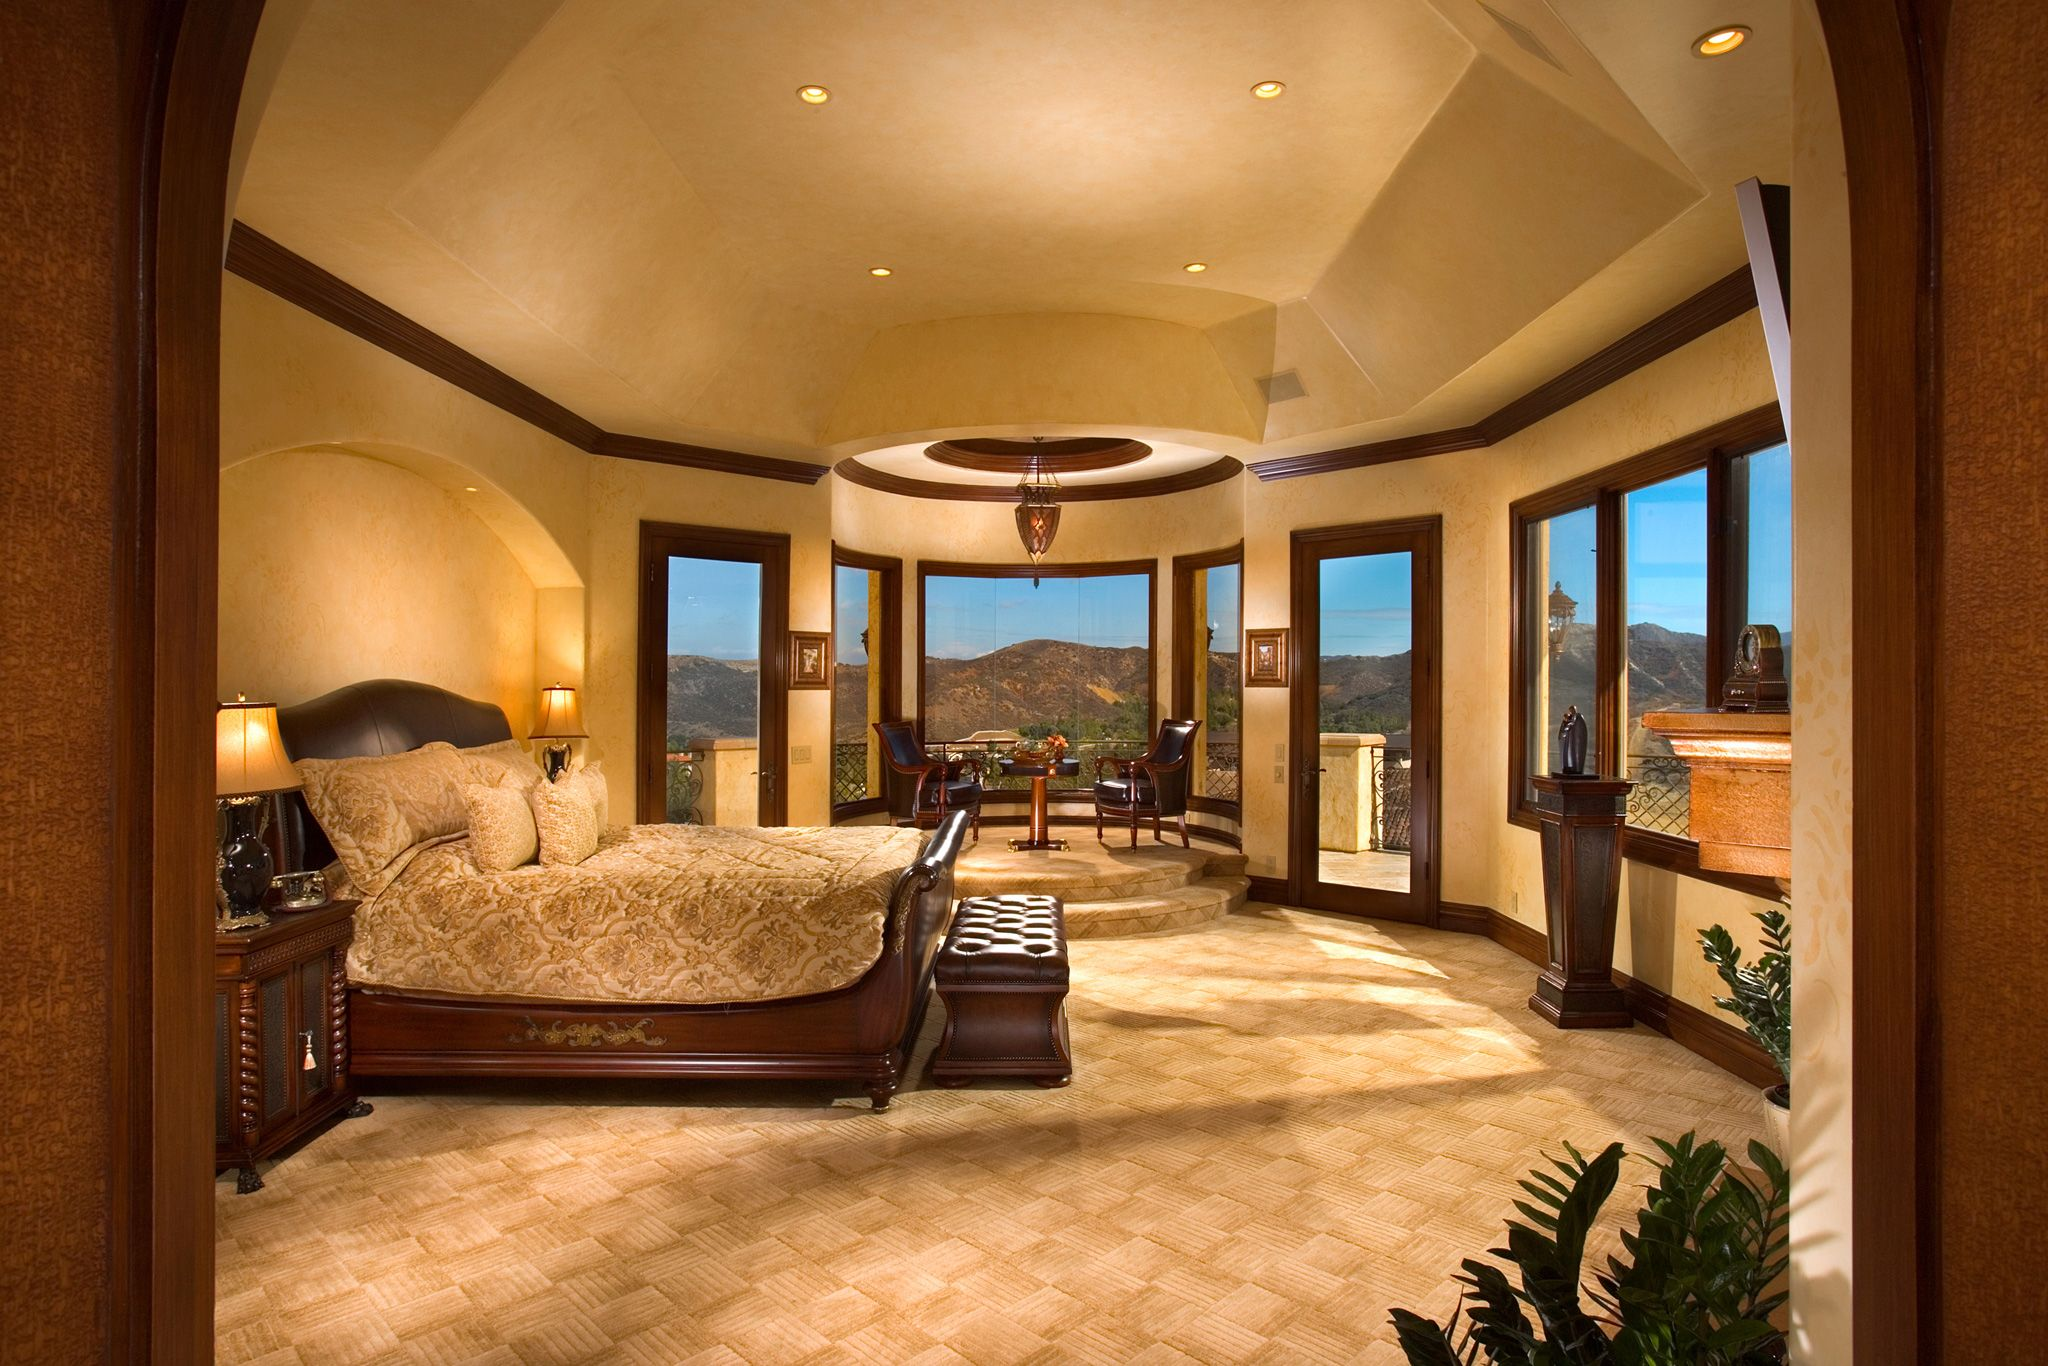 Luxury Master Suites 21 incredible master bedrooms design ideas | luxury master bedroom